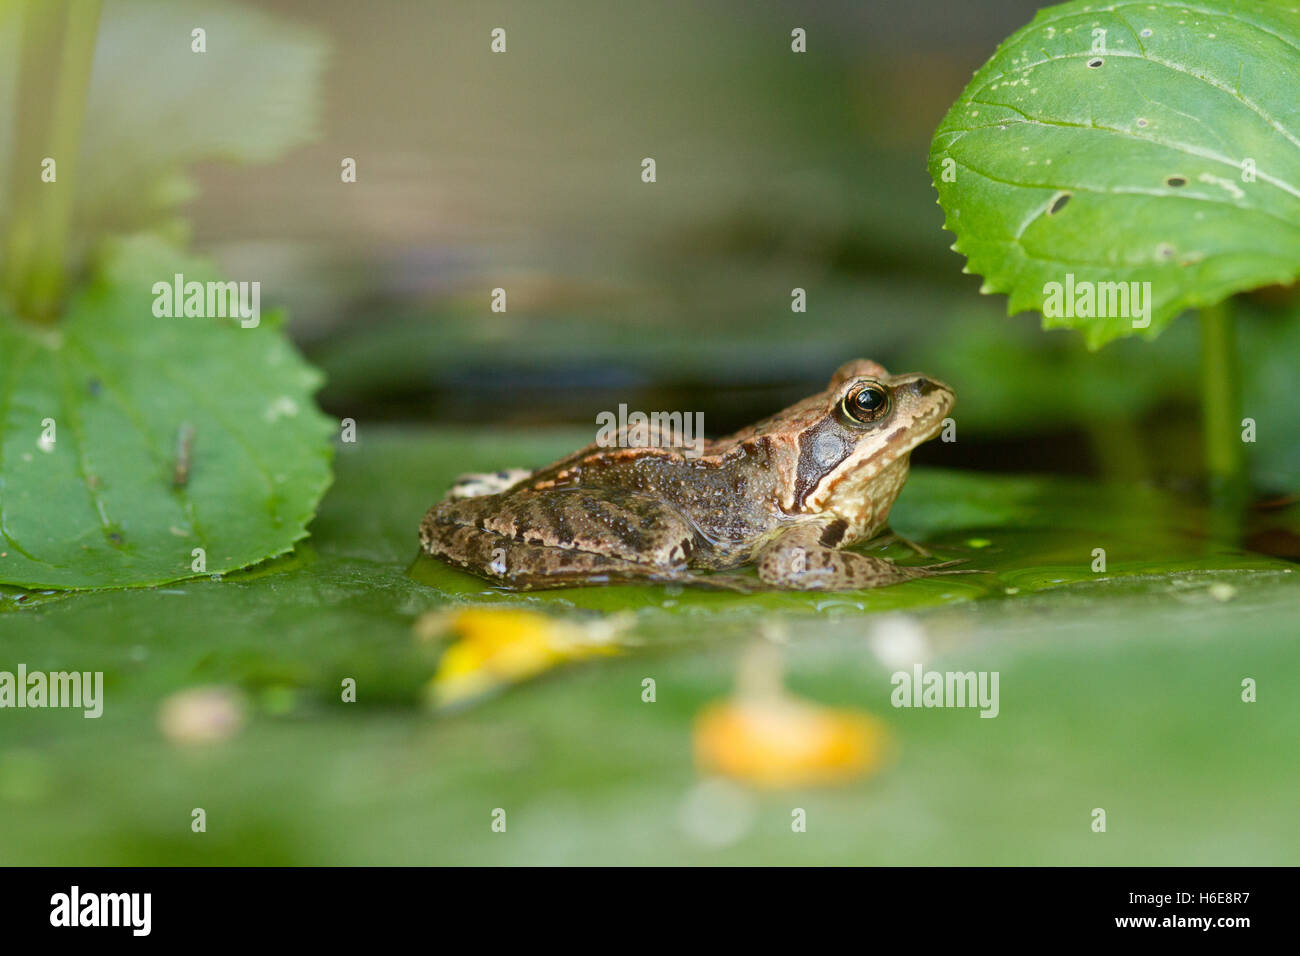 common European frog on a lily pad - Stock Image